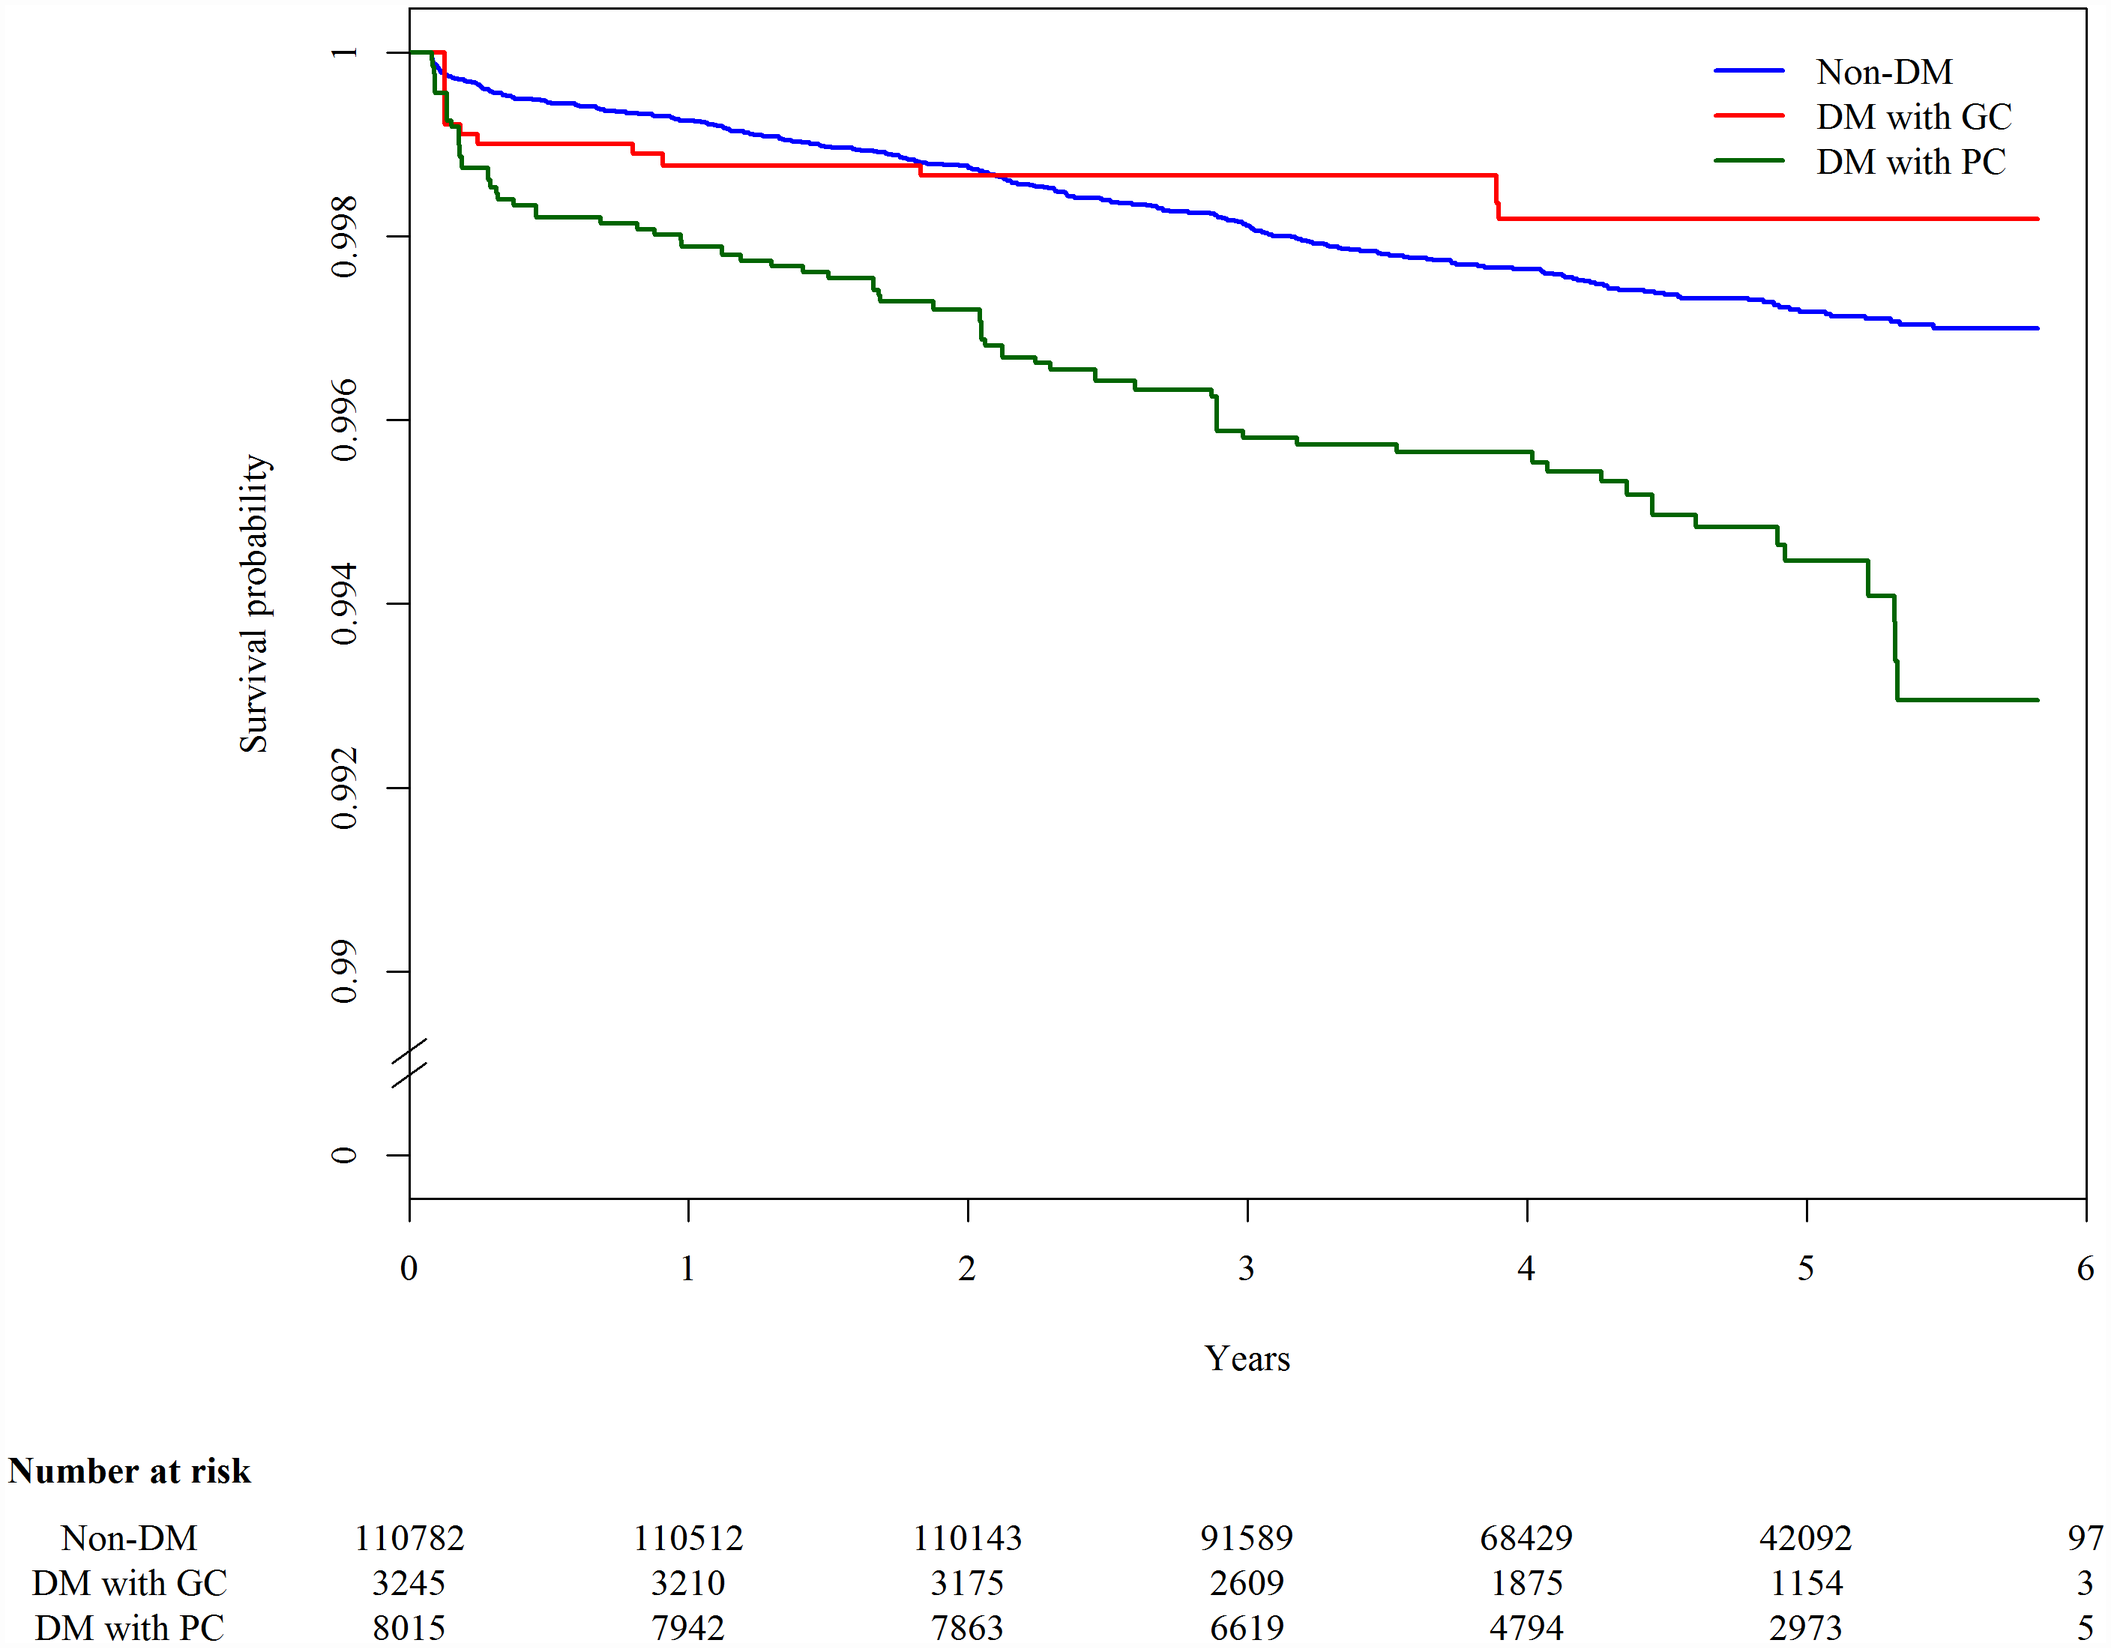 Kaplan-Meier plot of tuberculosis-free survival by diabetes mellitus and glycemic control status, adjusted for age.